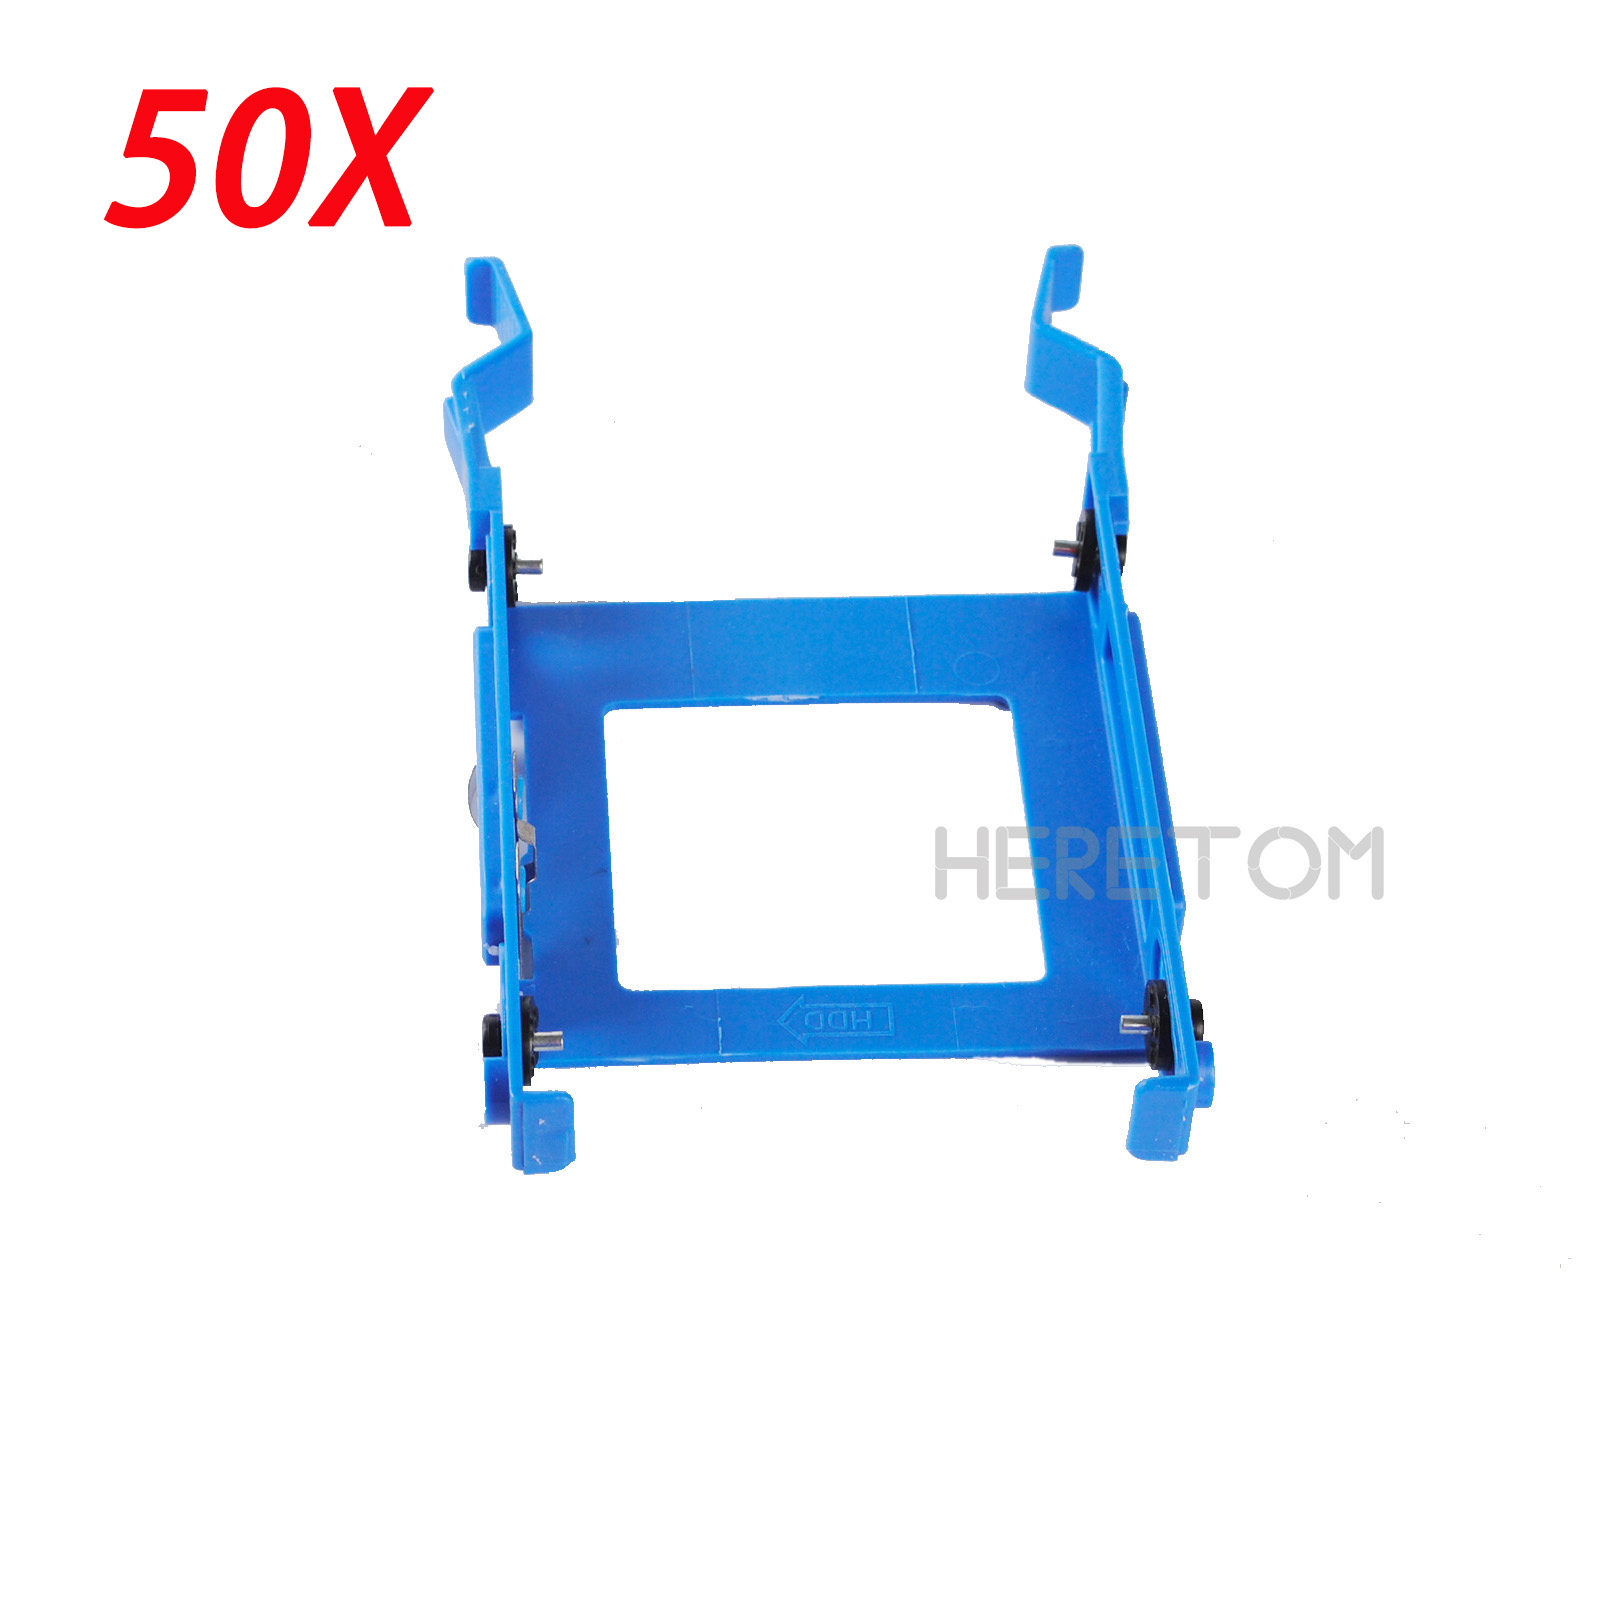 50PCS 2.5 HDD Bracket Caddy 3650 for Dell Optiplex 3040 5040 5050 7040 7050 3046 MT X9FV3 Free Shipping(China)